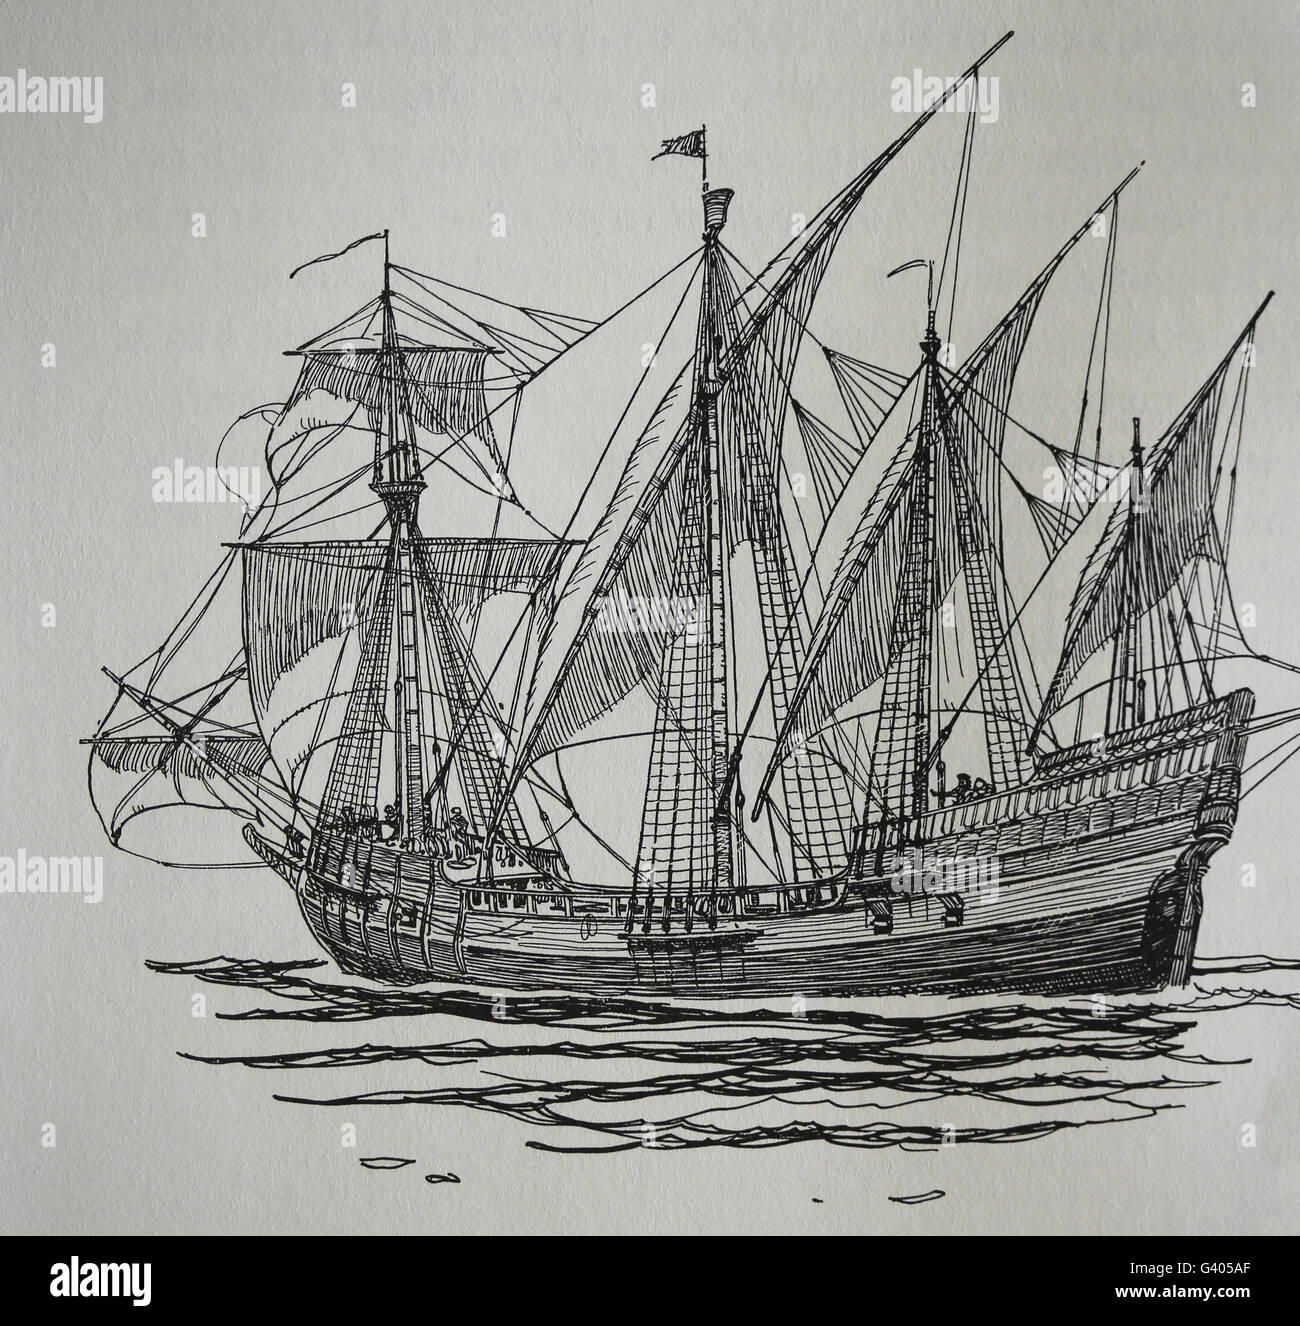 Age of Discovery. The Caravel. 15th-16th century. Engraving. 19th century. - Stock Image